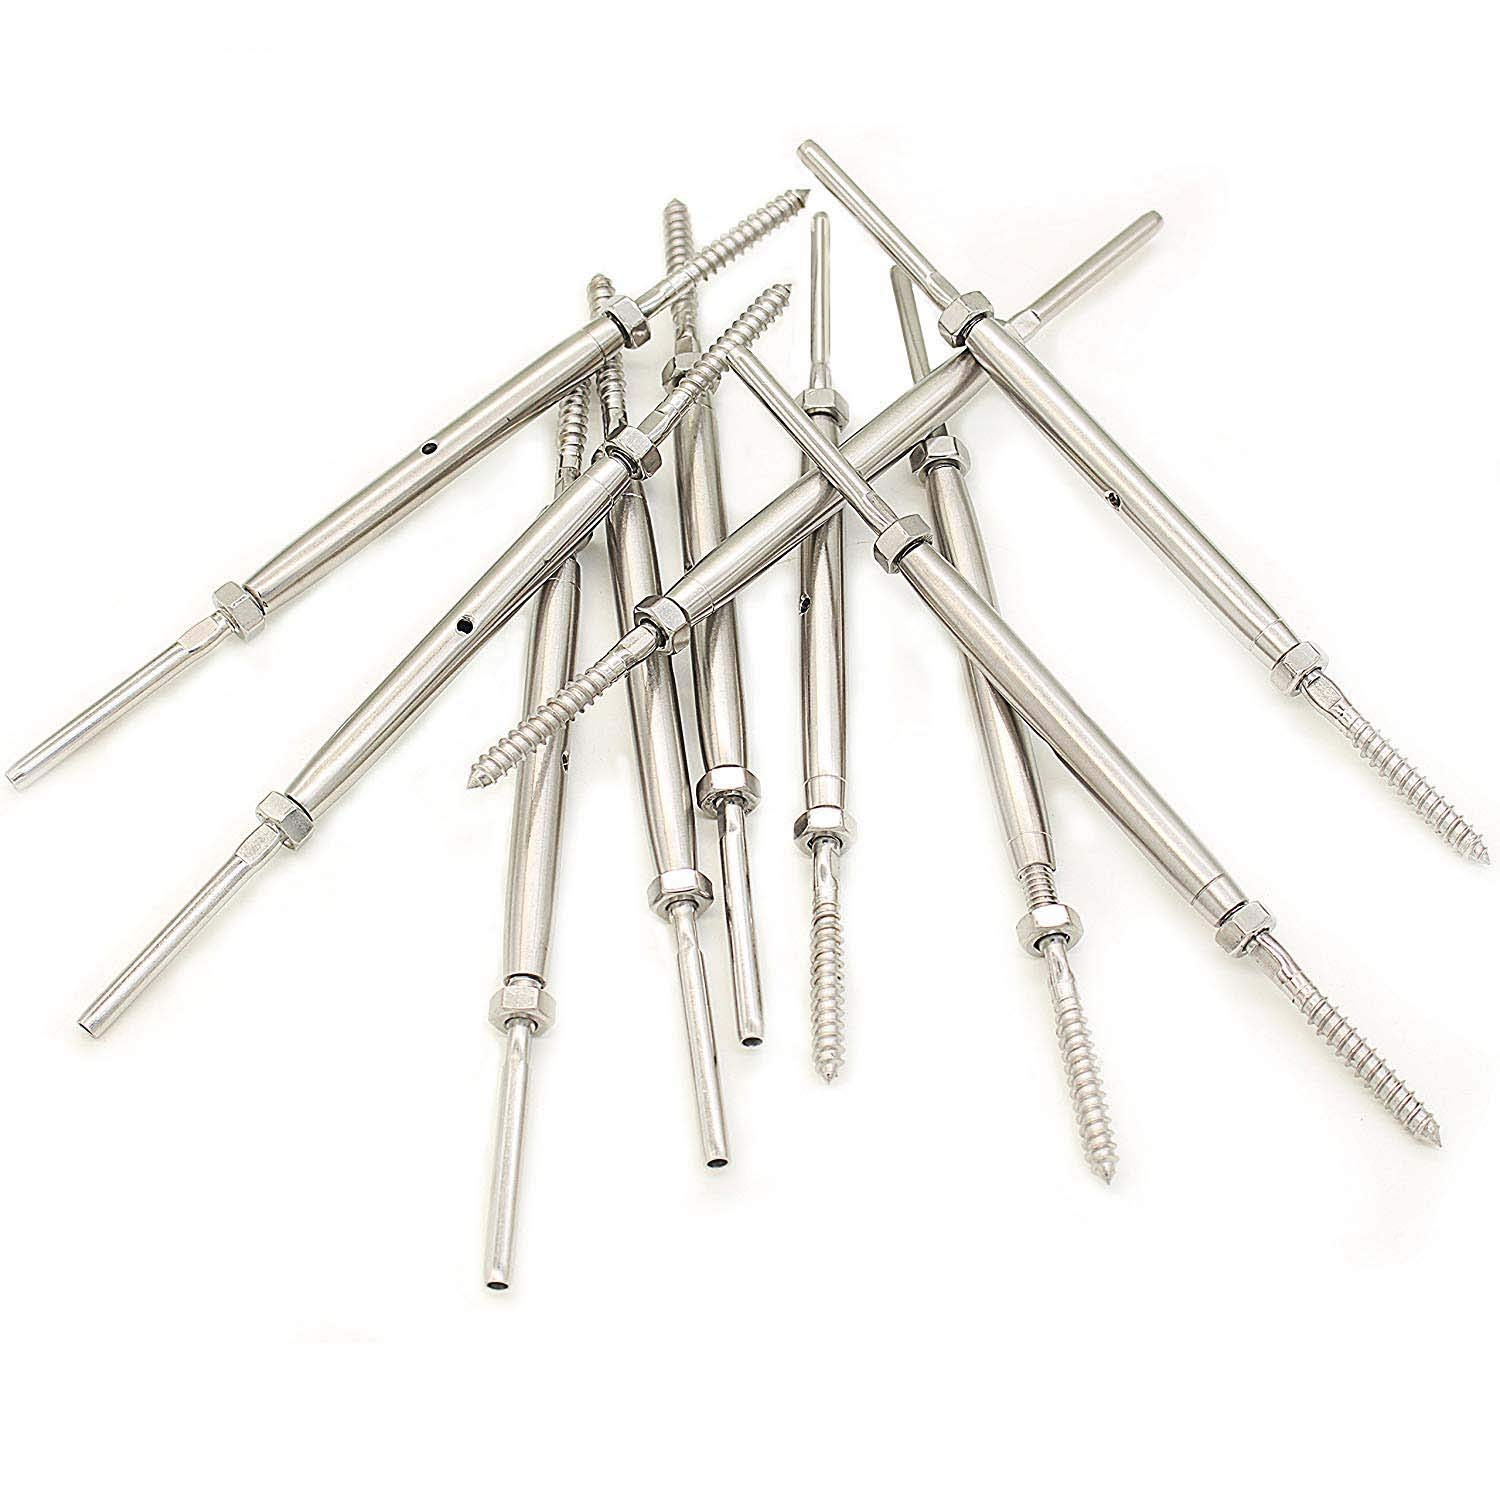 Lot of 10 ShipeeKin Hand Swage Turnbuckle Tensioner with Lag Screw for 1//8 Cable Railing Stainless Steel T316 Marine Grade